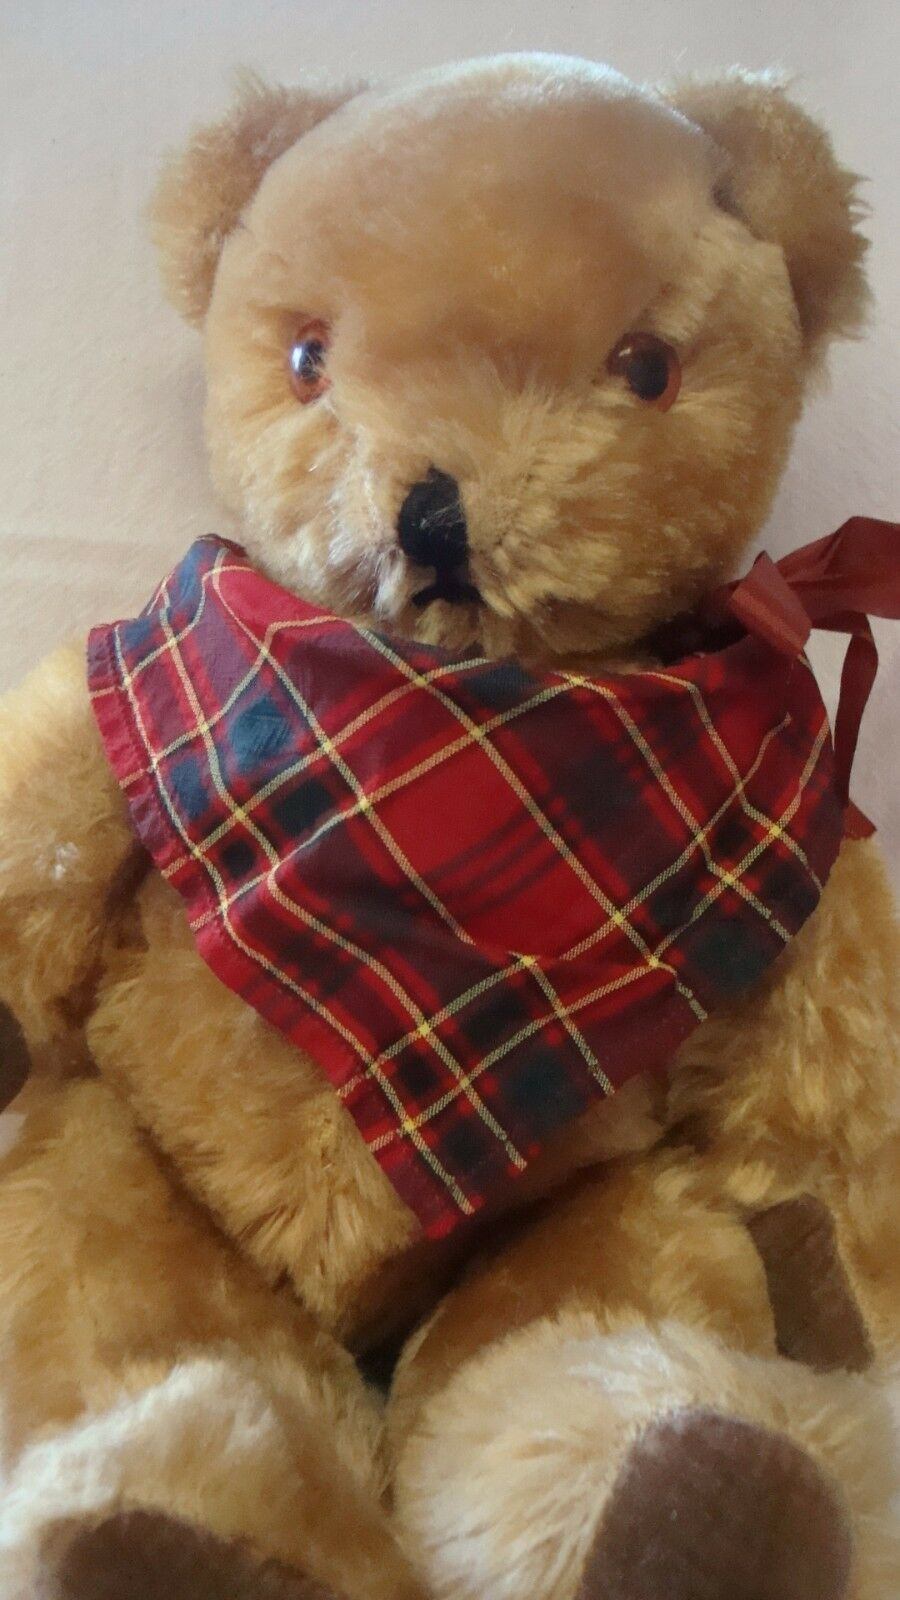 VINTAGE 1950s  PEDIGREE BELL IN  EAR JOINTED GoldEN MOHAIR TEDDY BEAR